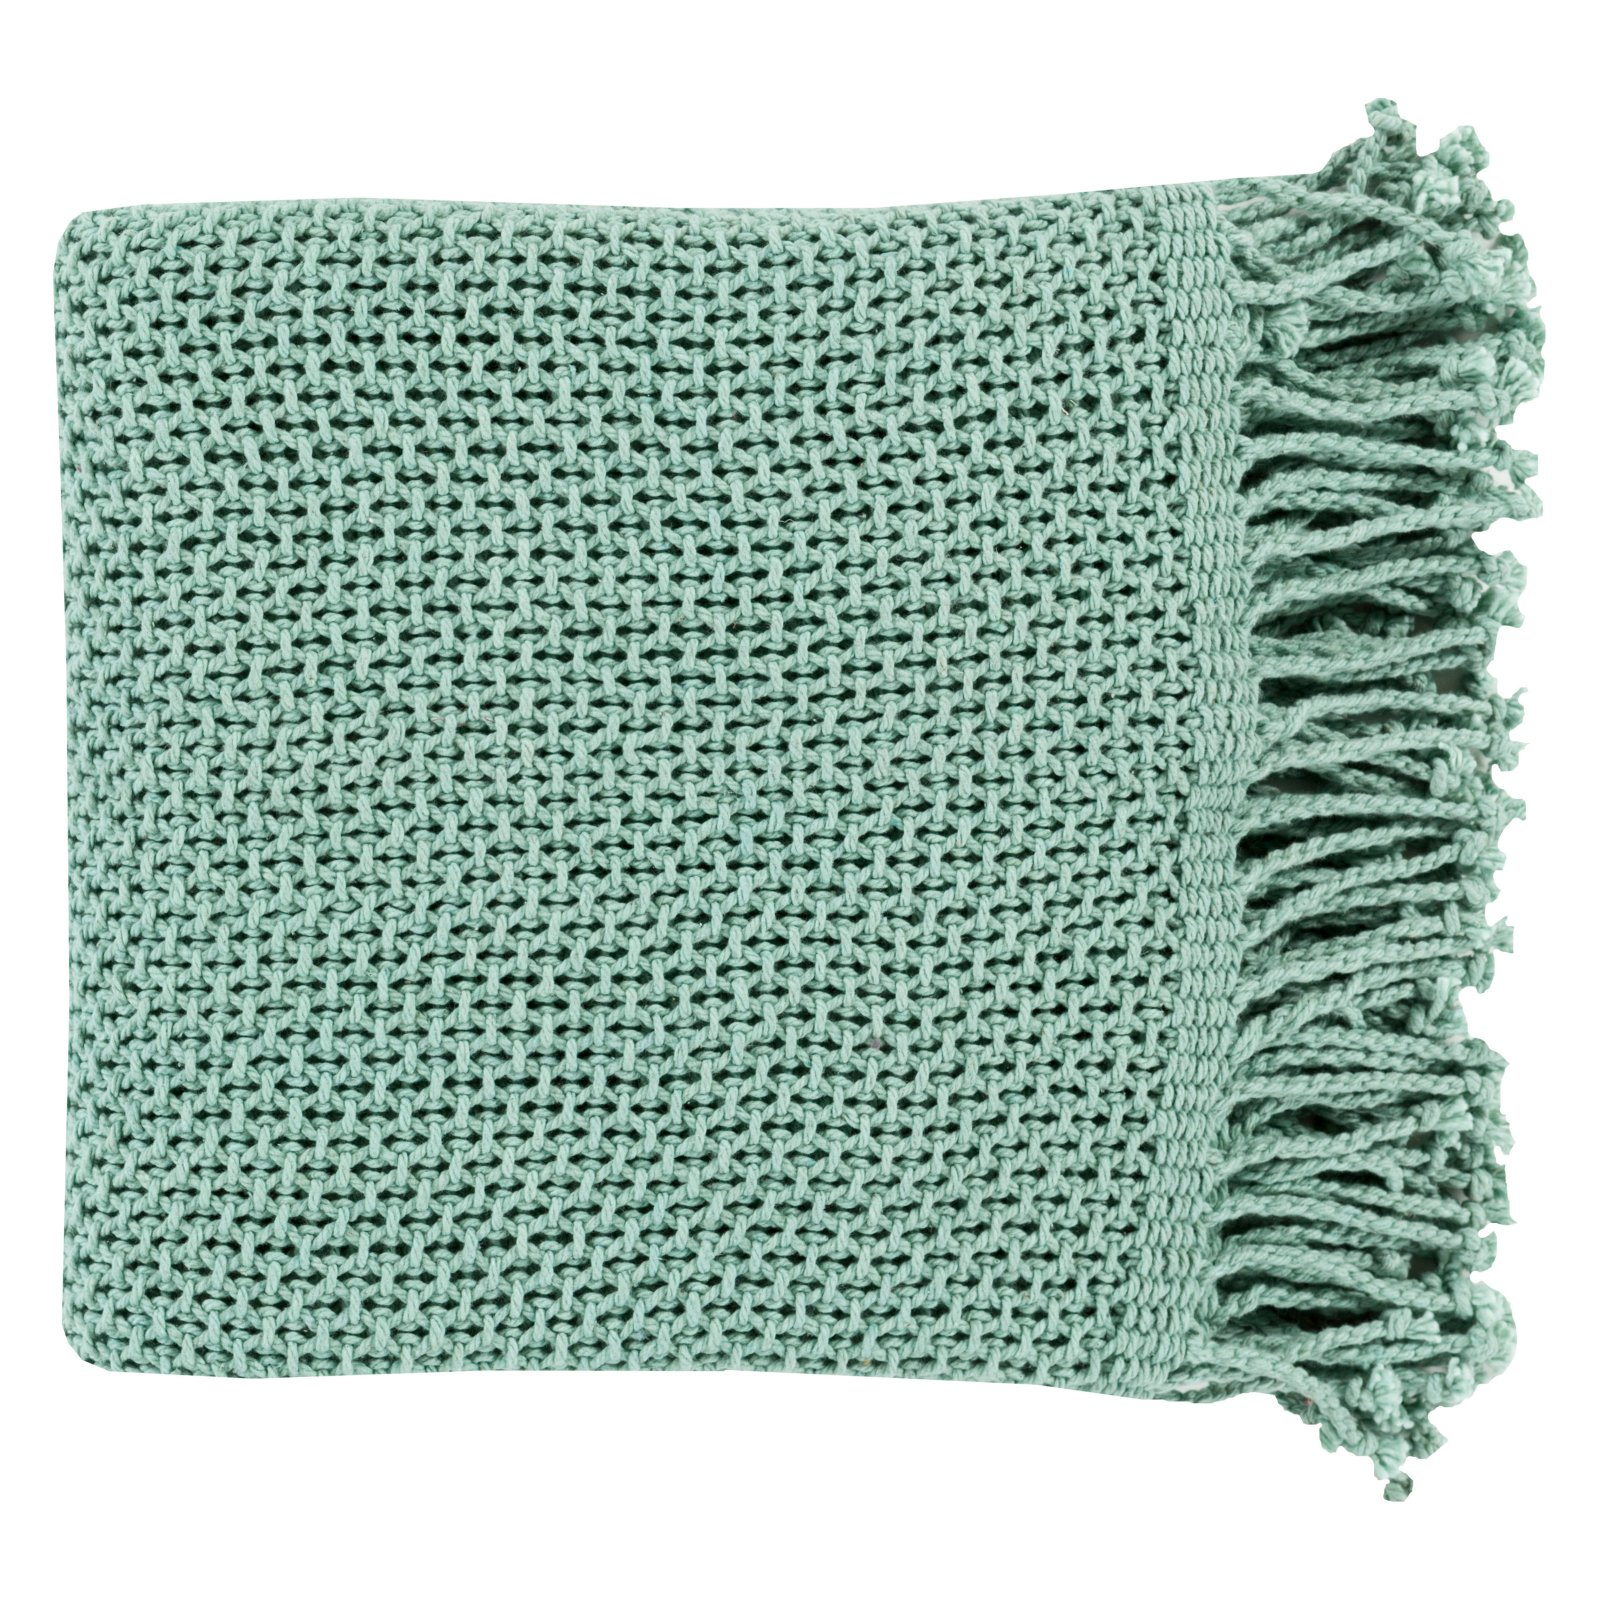 Surya Tibey Cotton Throw Blanket